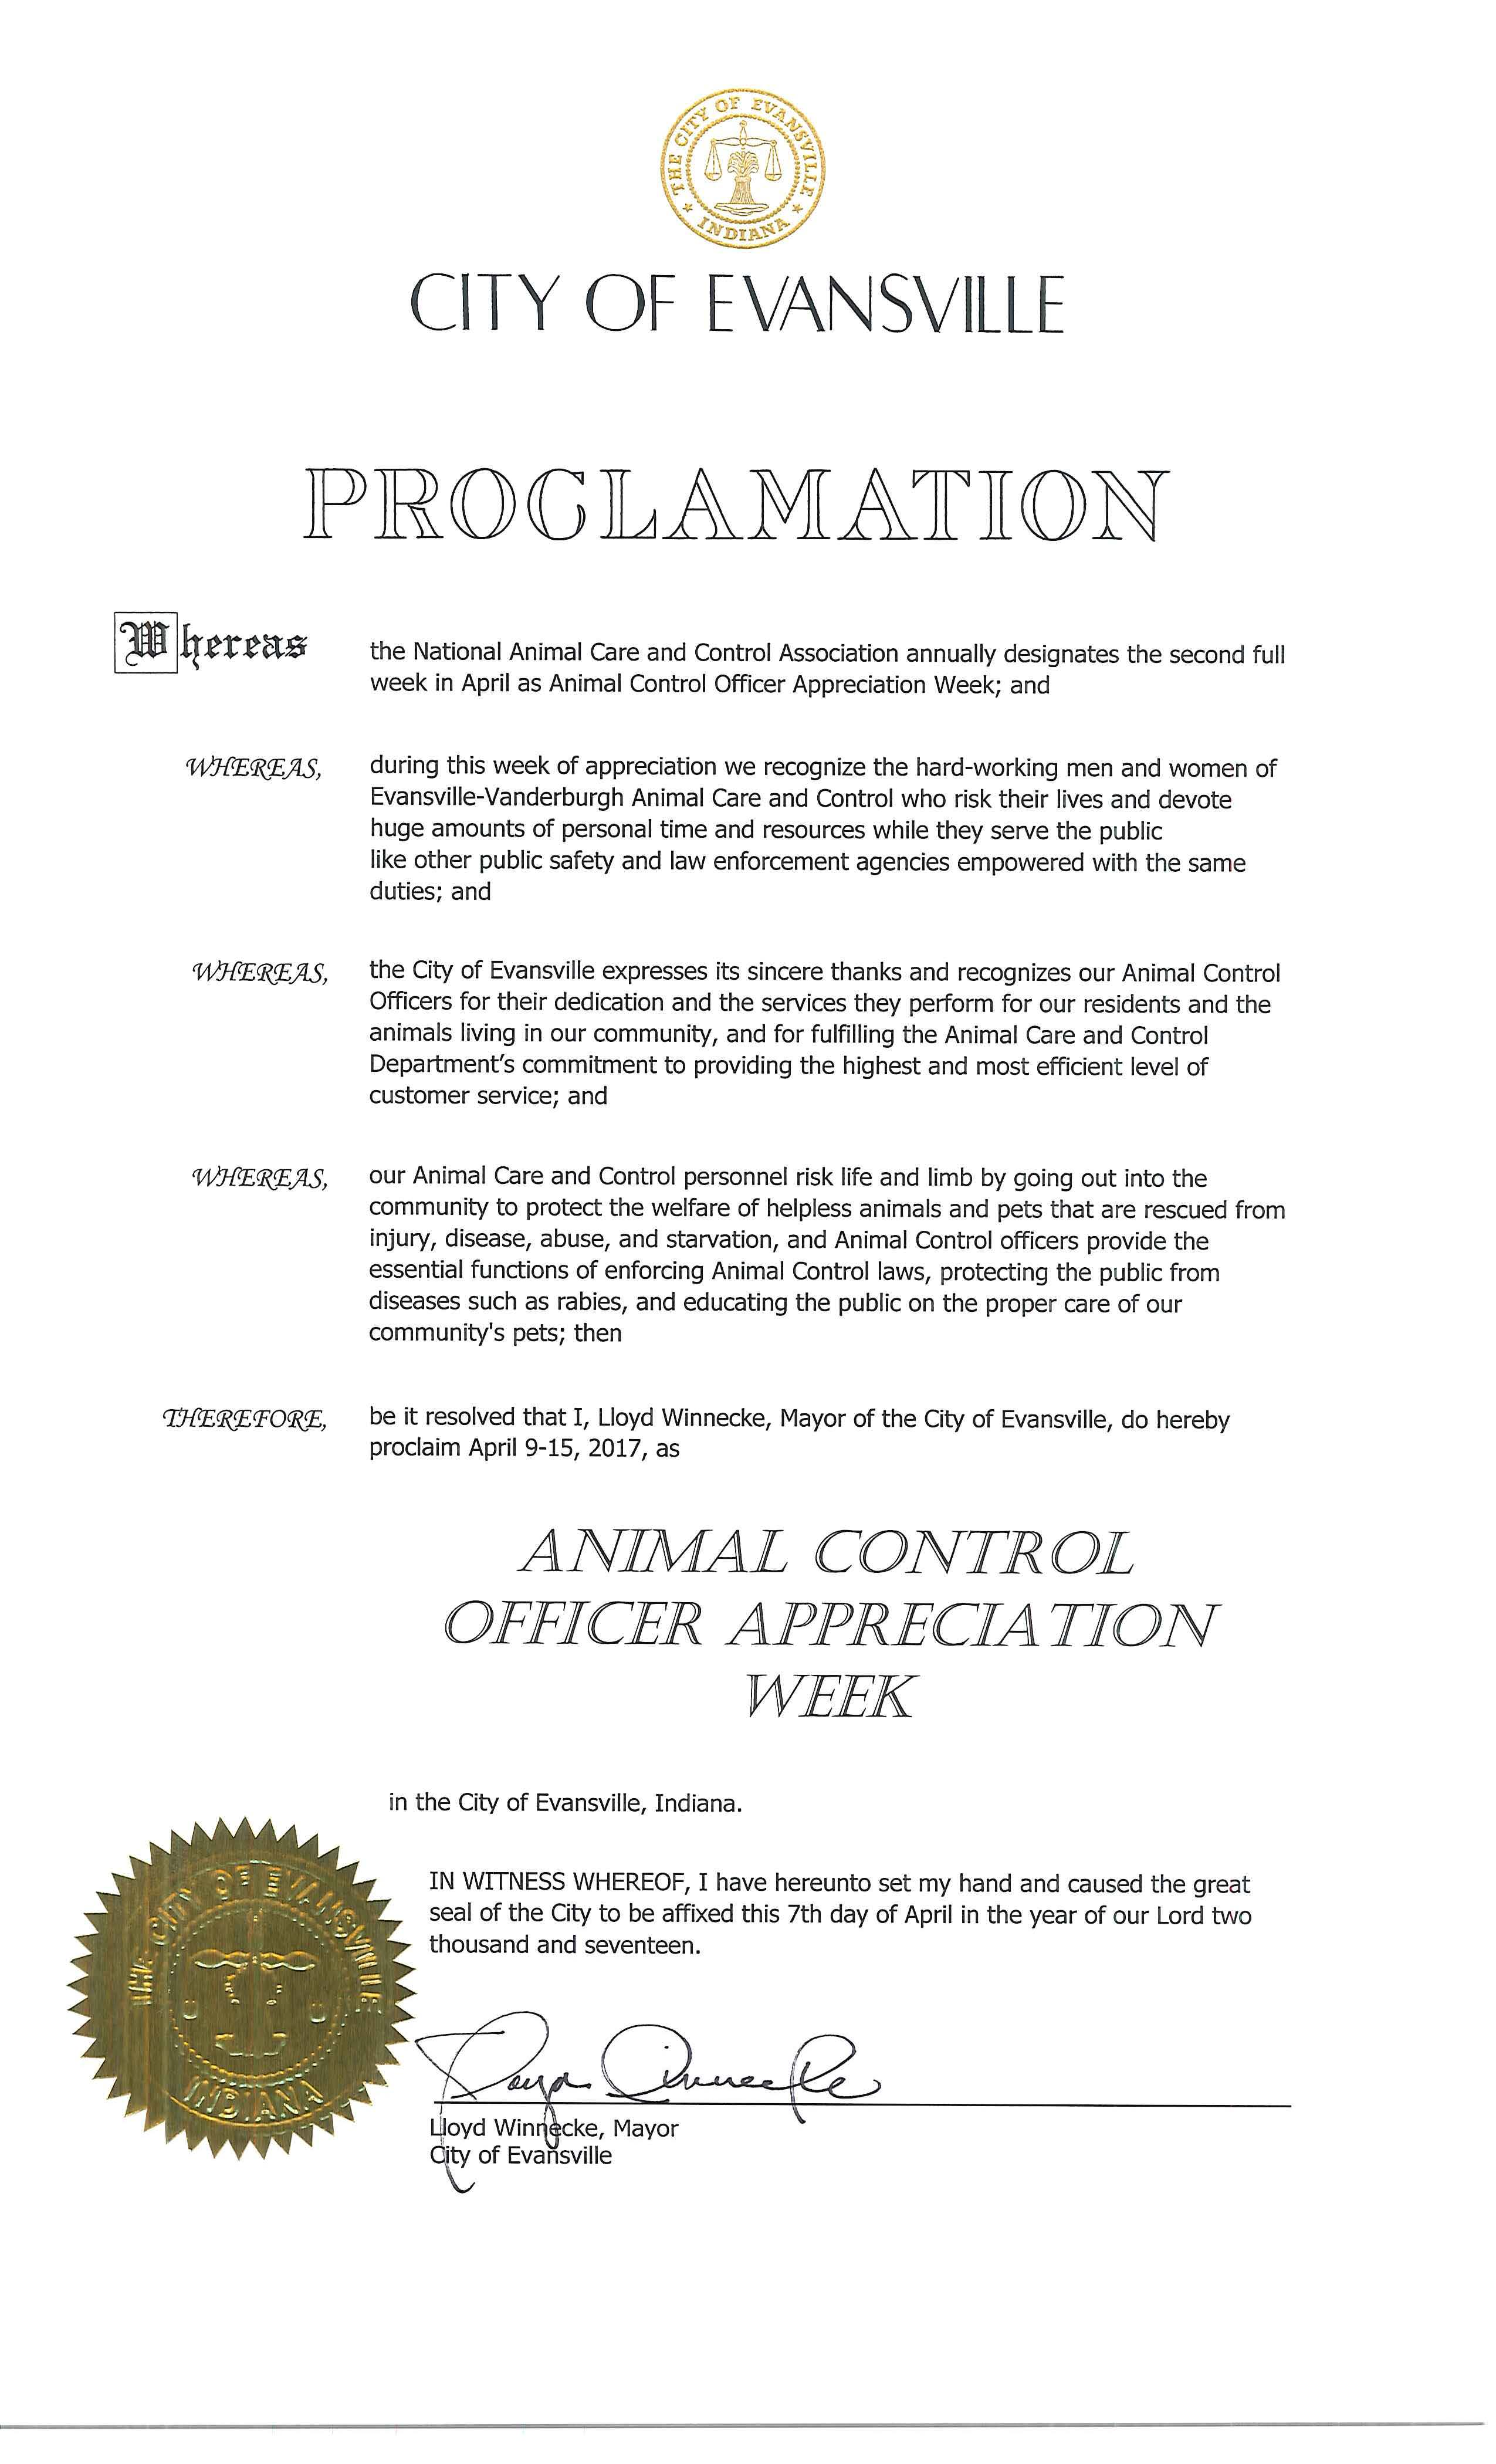 mayoral proclamation examples    city of evansville